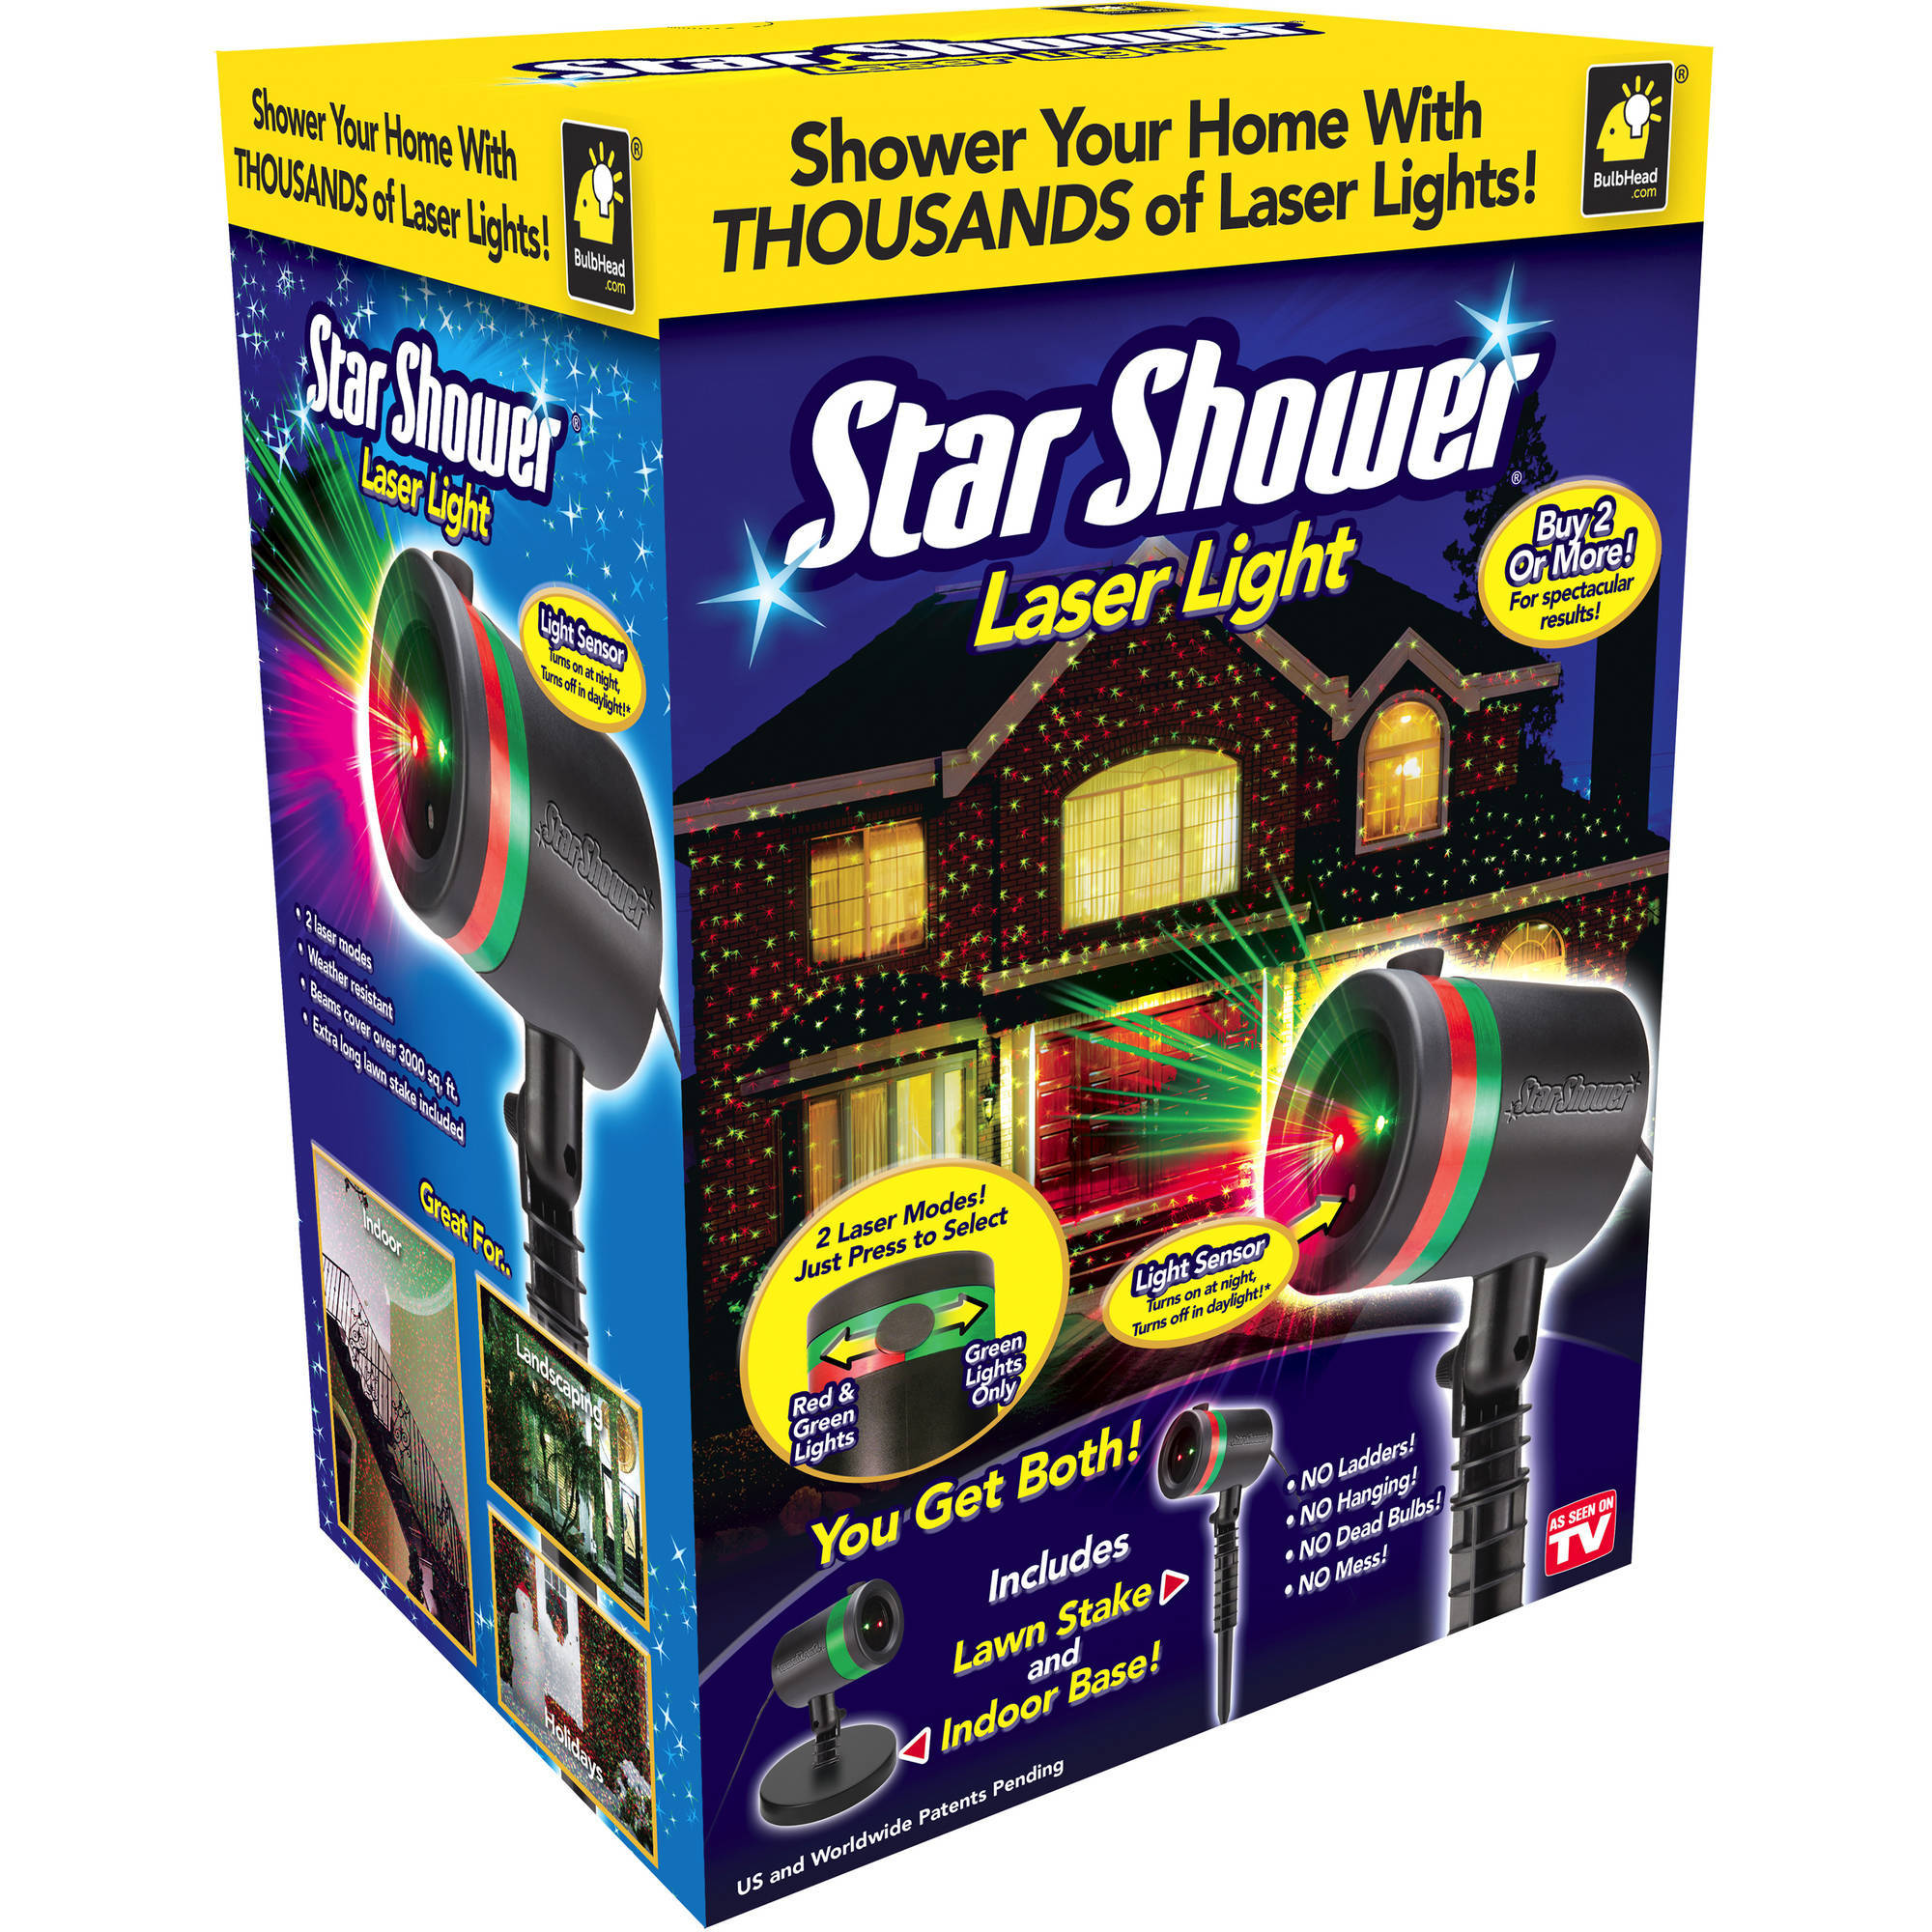 As Seen On TV Outdoor Light Decoration Star Shower Laser Light Show Holiday Lights!